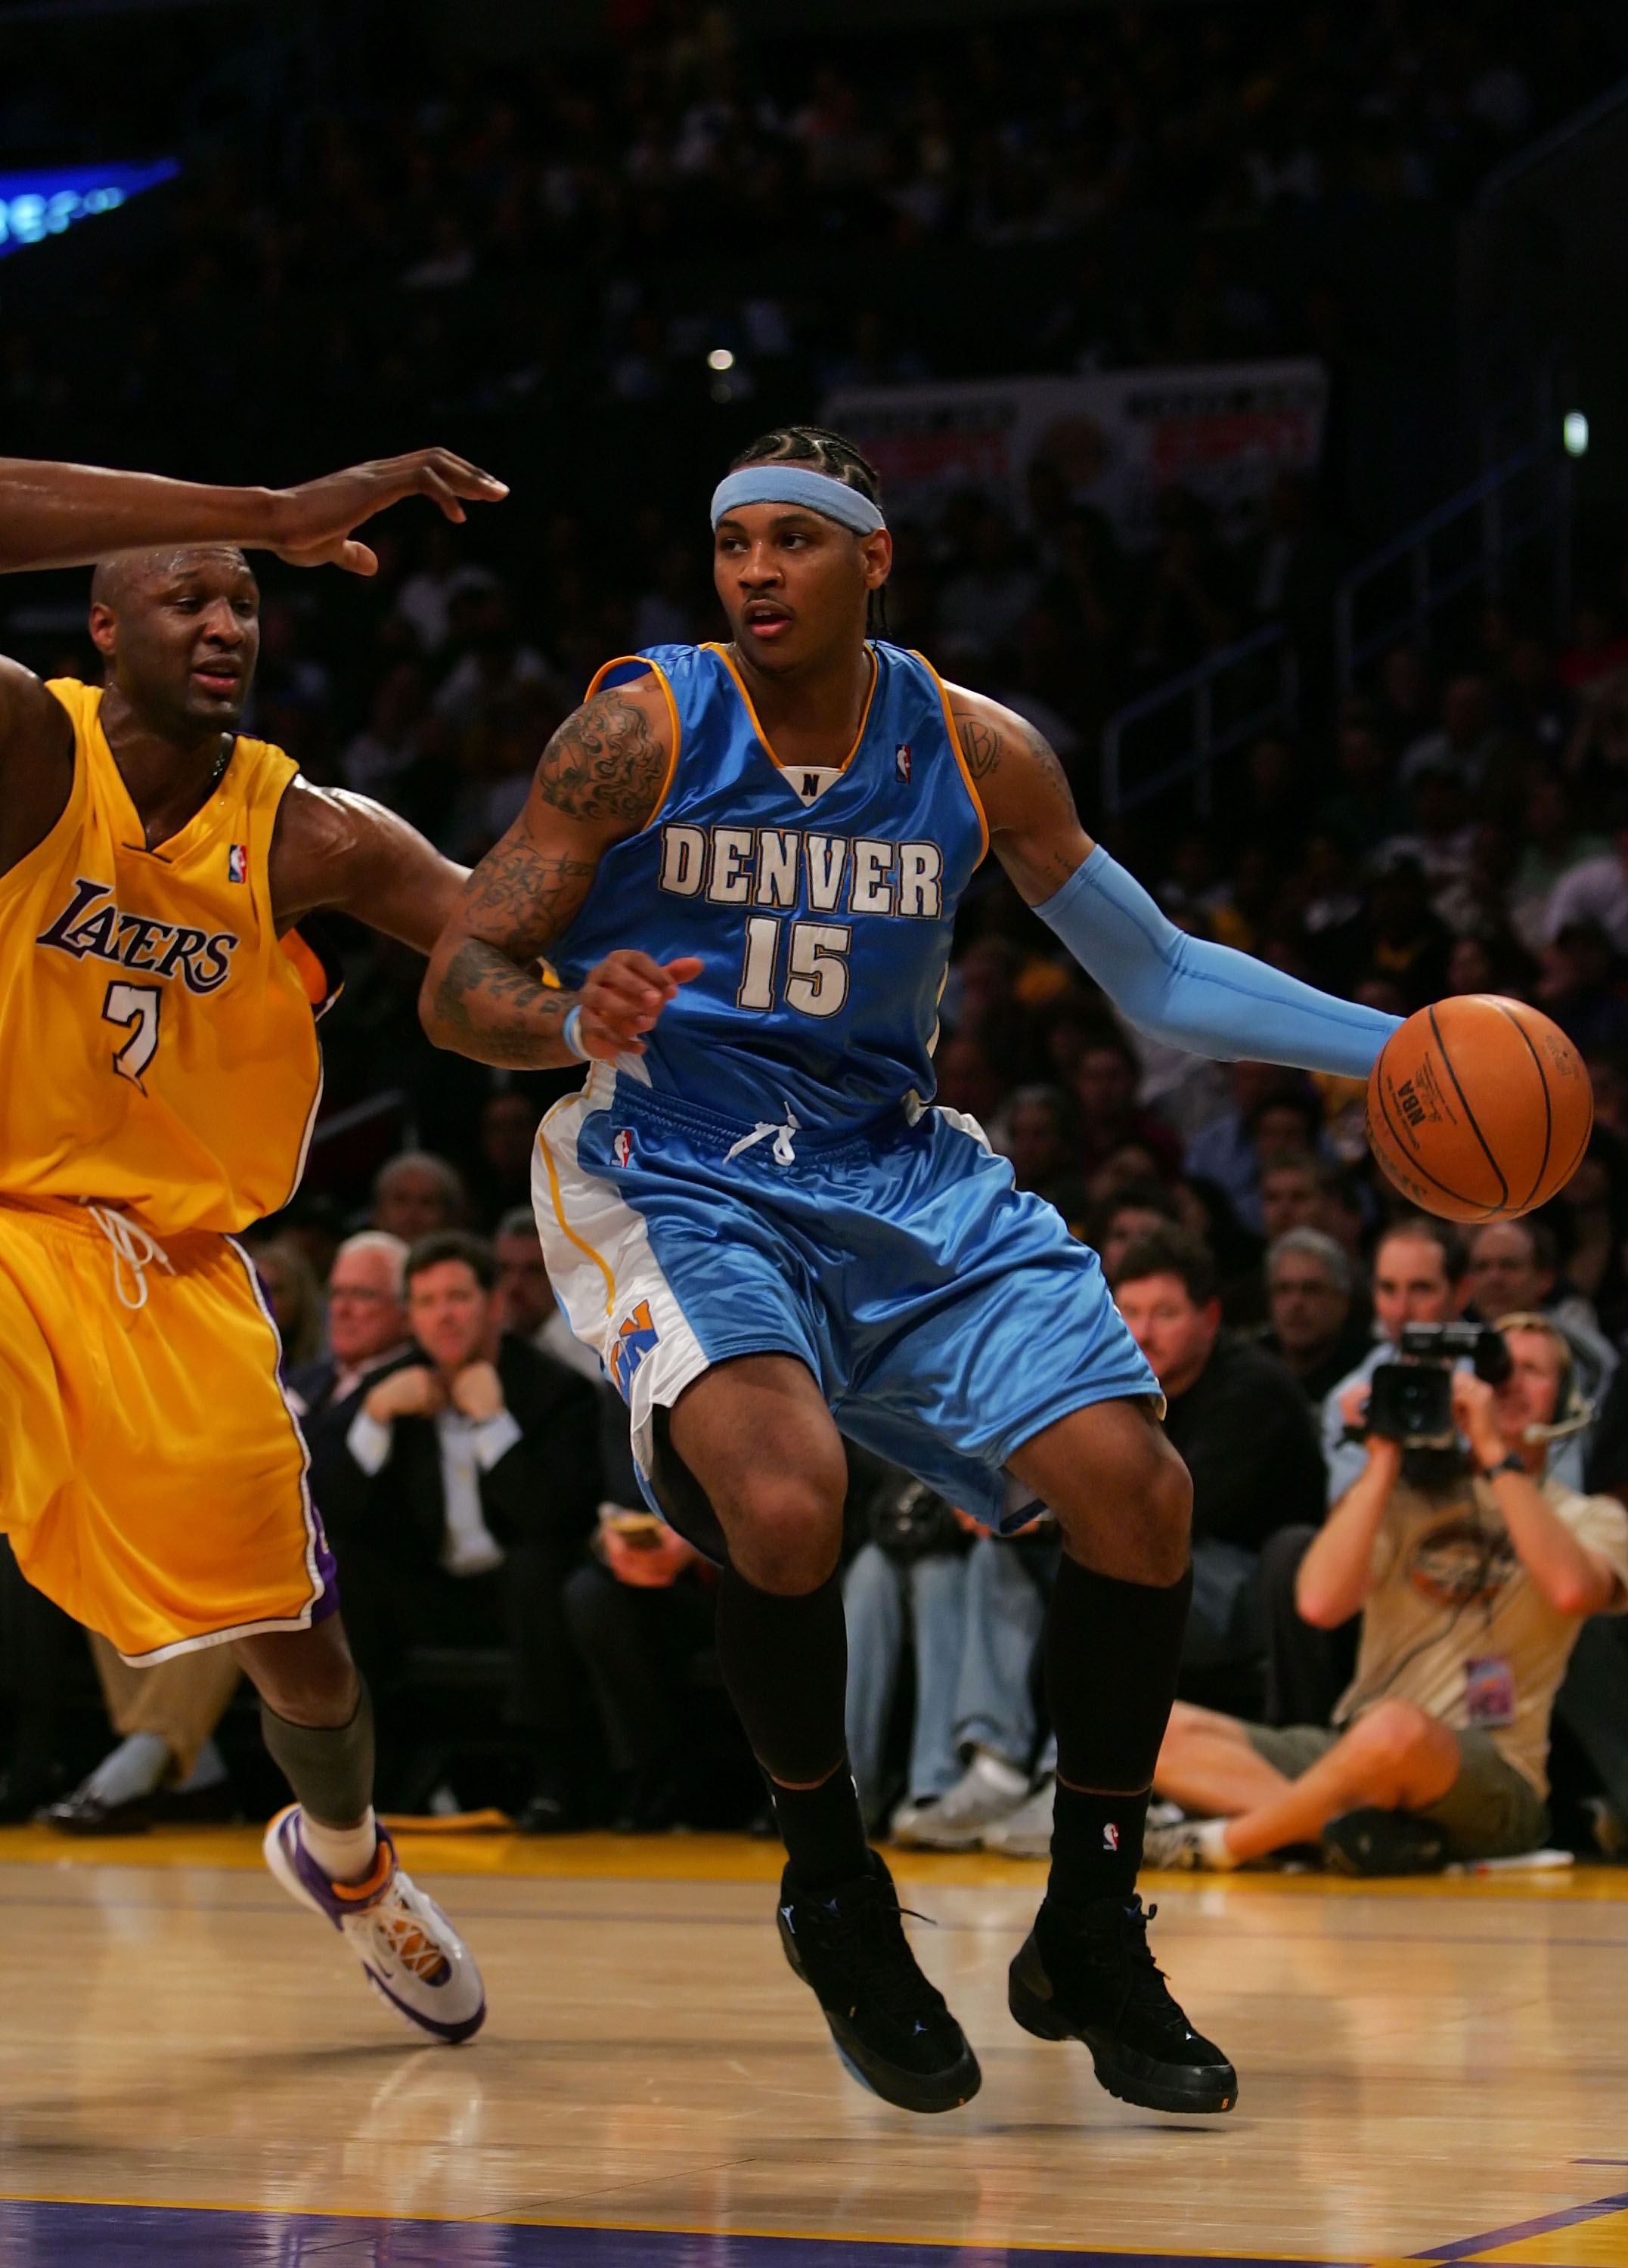 LOS ANGELES - APRIL 3:  Carmello Anthony #15 of the Denver Nuggets drives against Lamar Odom #7 of the Los Angeles Lakers at Staples Center April 3, 2007 in Los Angeles, California.  NOTE TO USER: User expressly acknowledges and agrees that, by downloadin